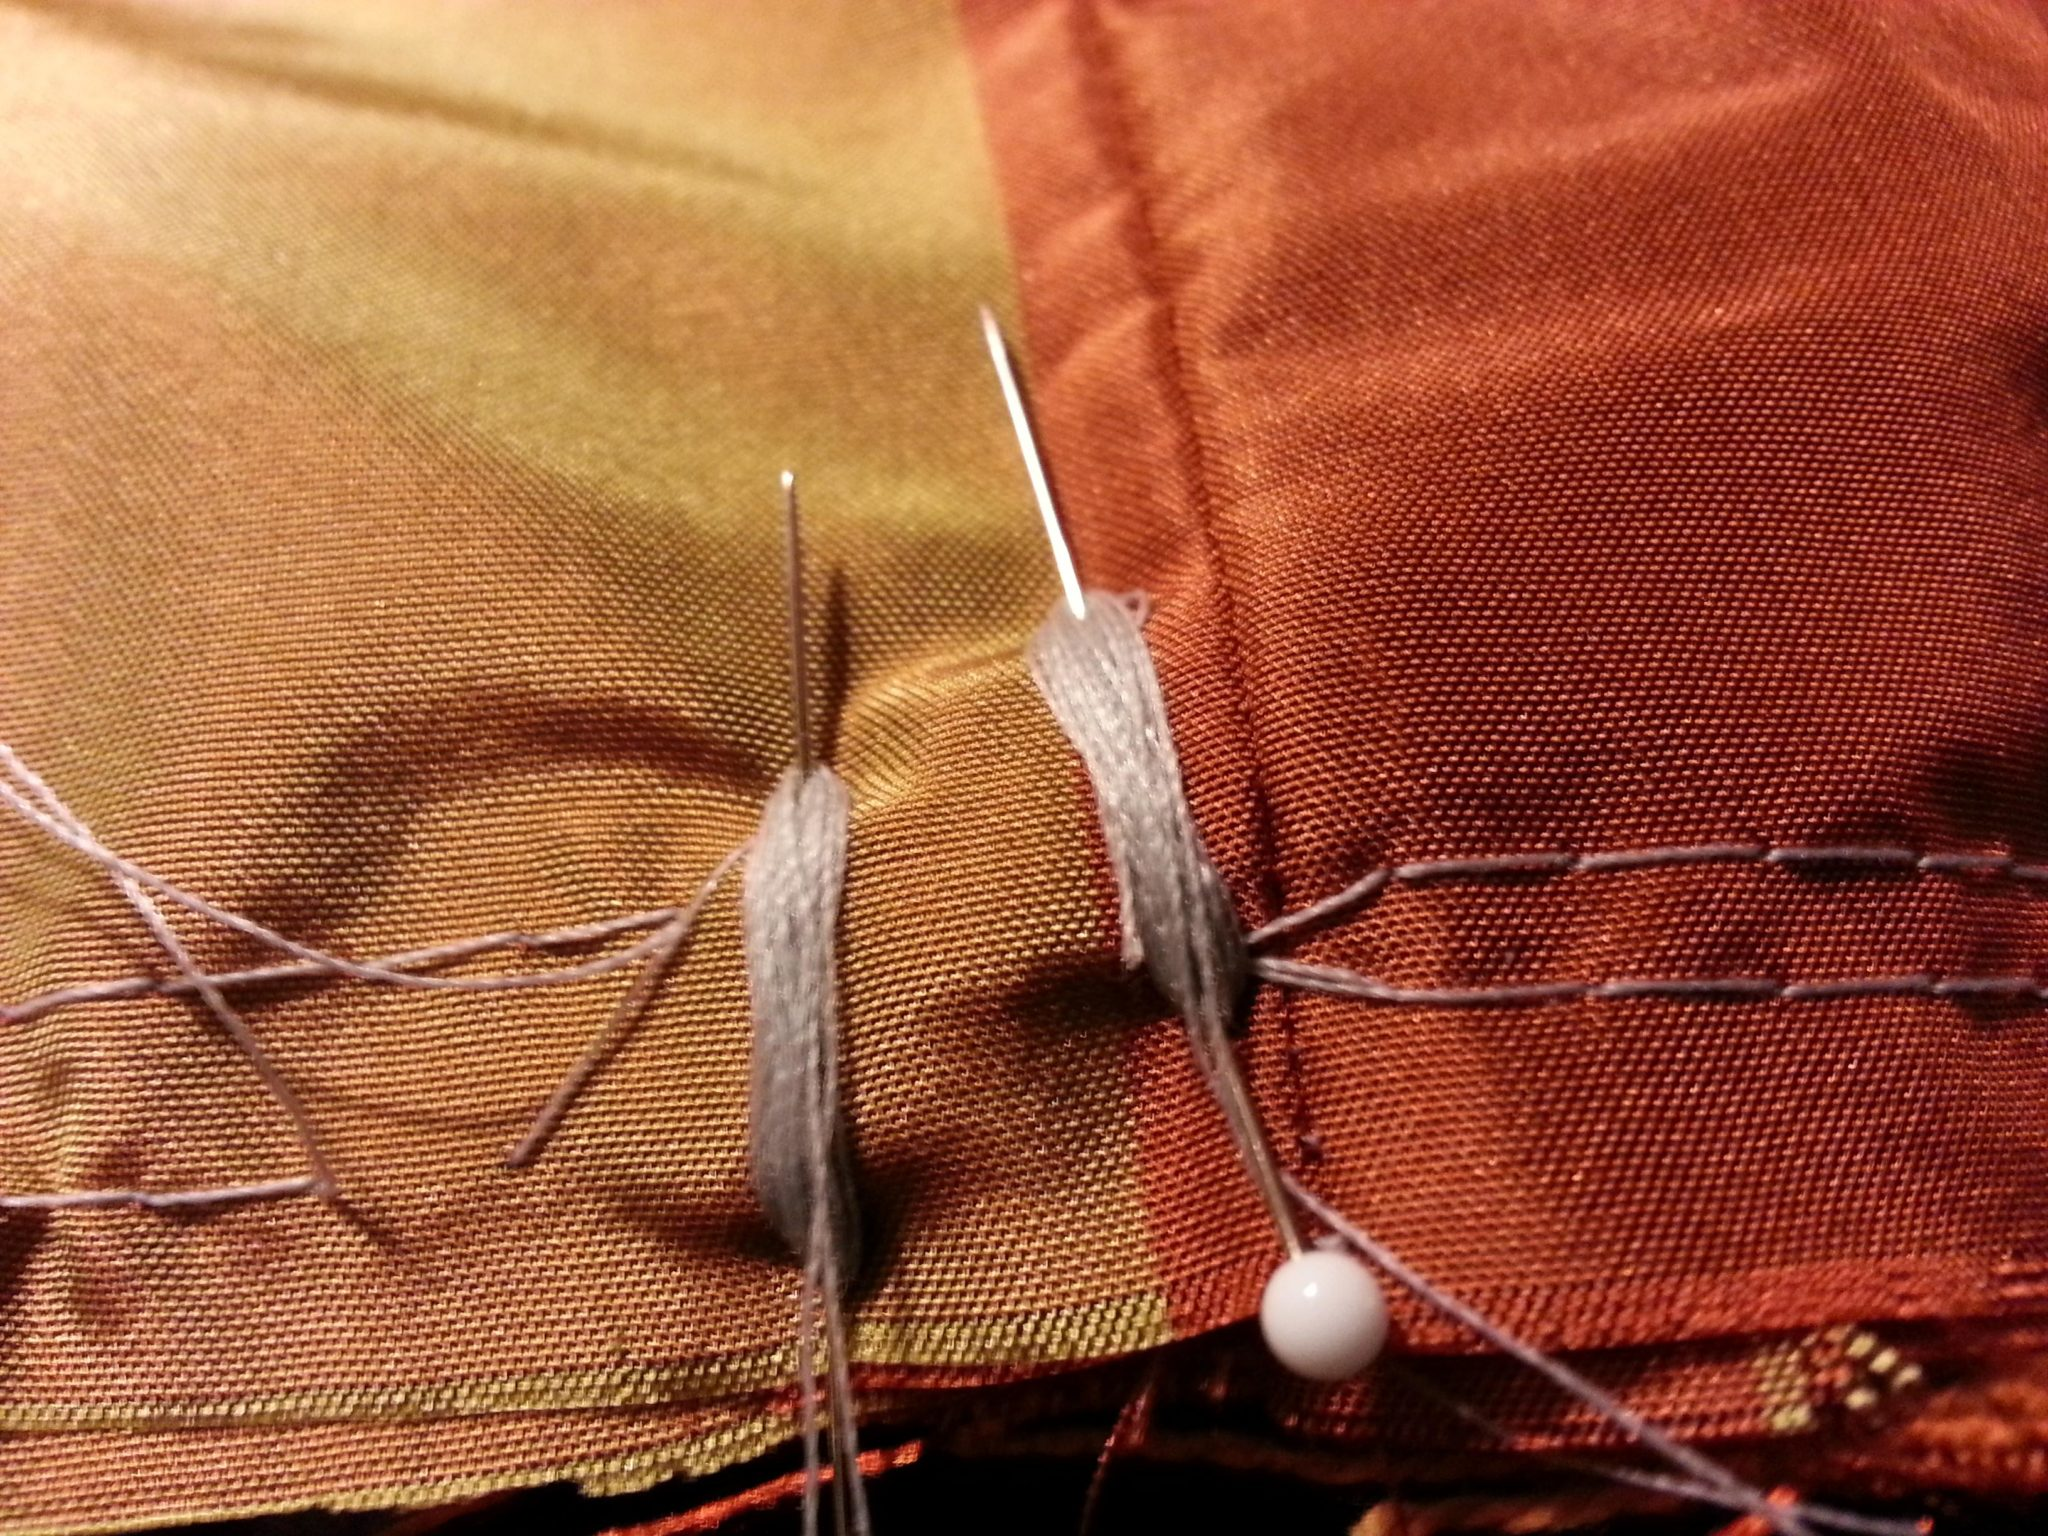 securing the threads for gathering the ruffles